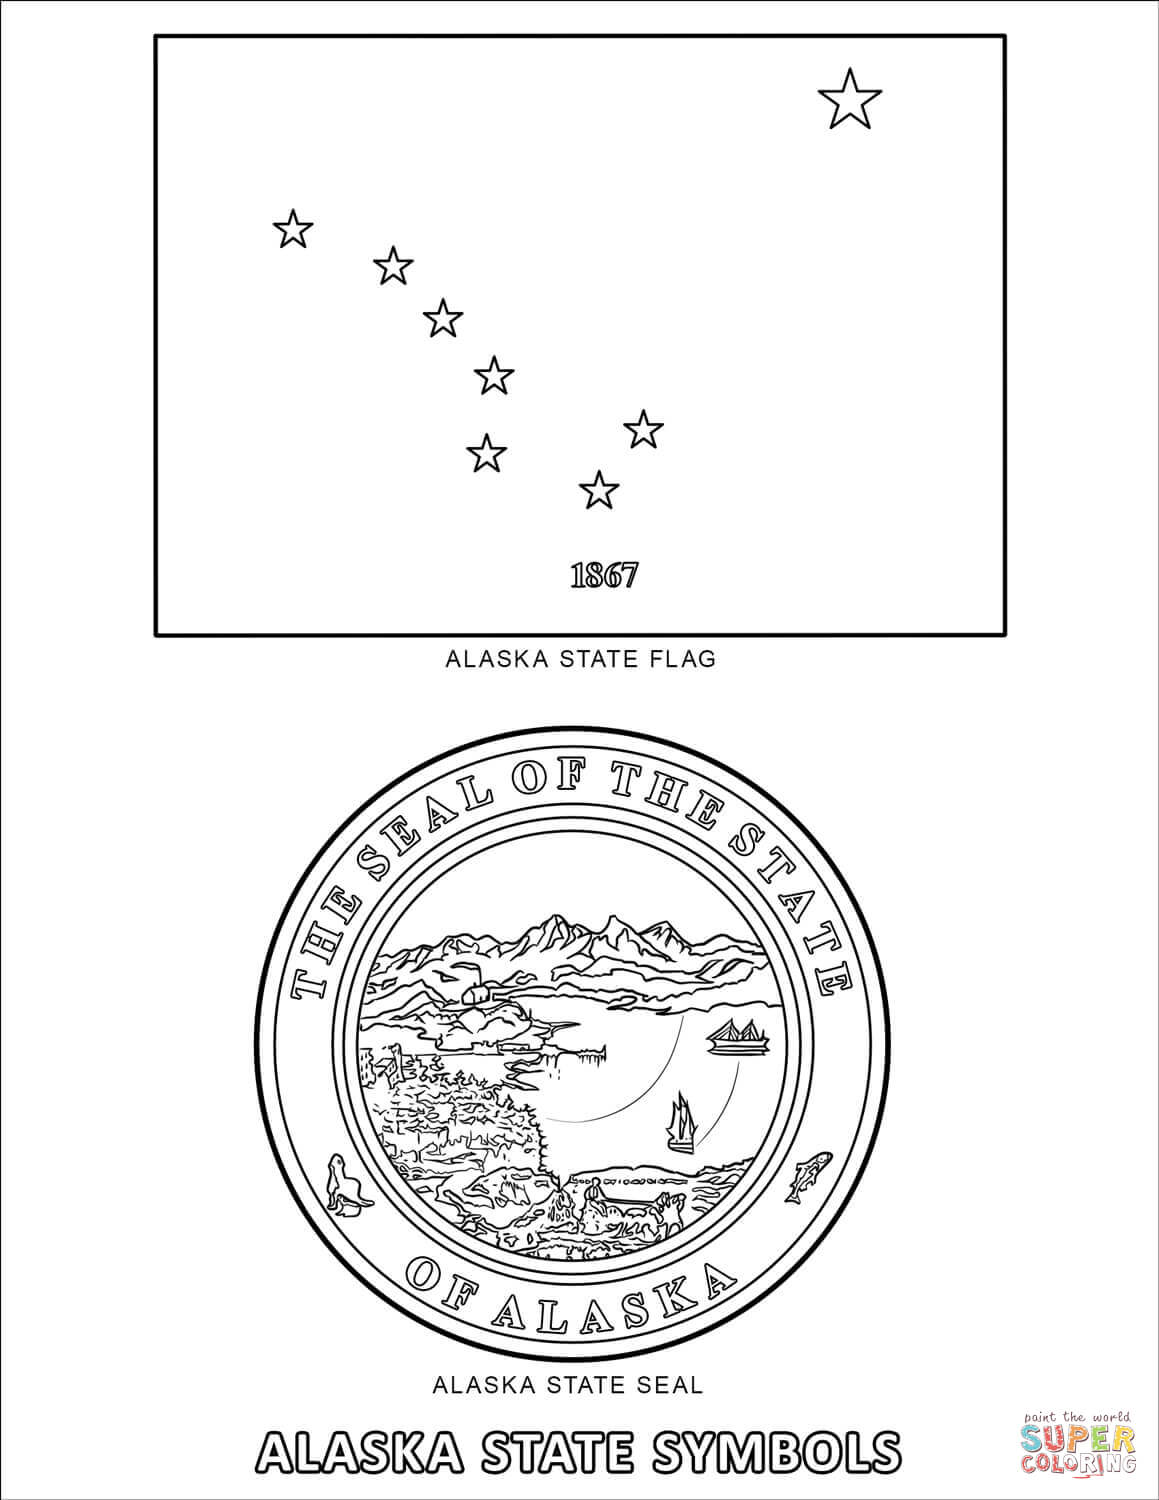 Alaska State Symbols Coloring Page